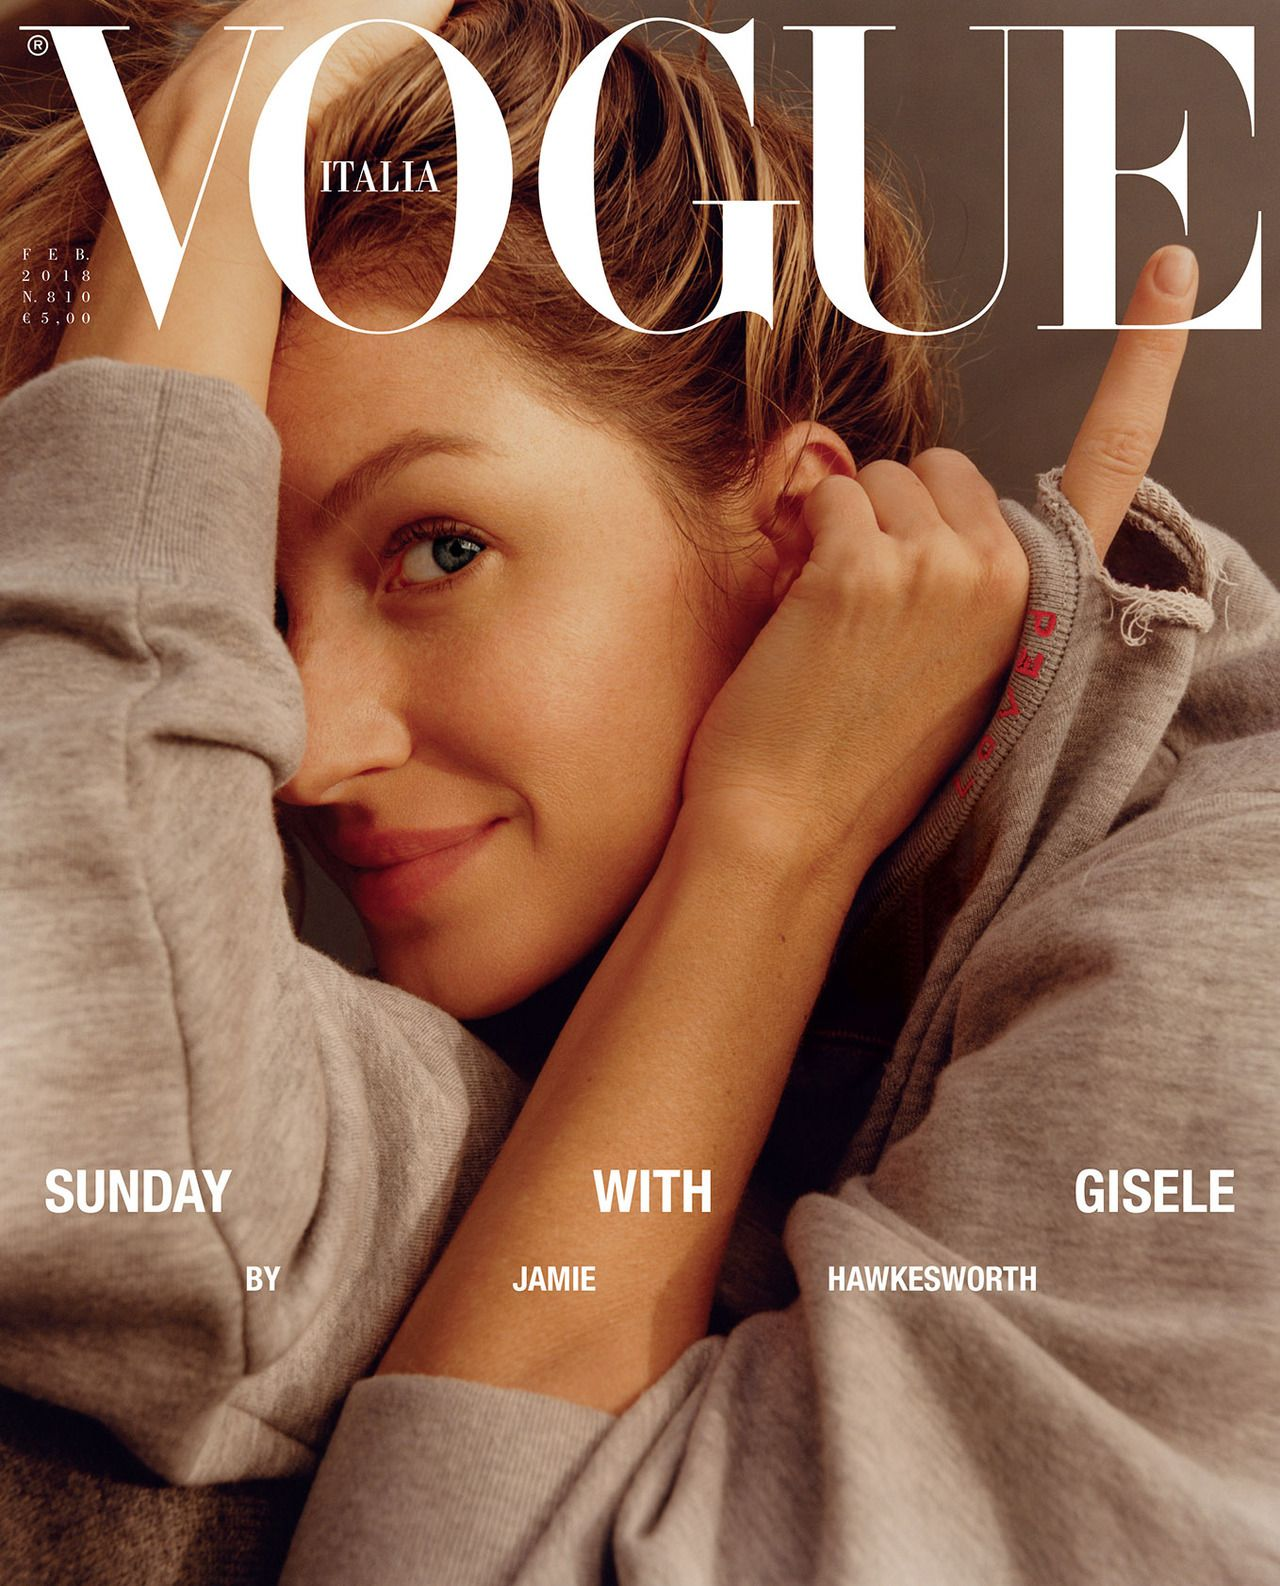 Cover Vogue Italia February 2018 | Jamie Hawkesworth | Vogue Italia | Numerique Retouch Photo Retouching Studio